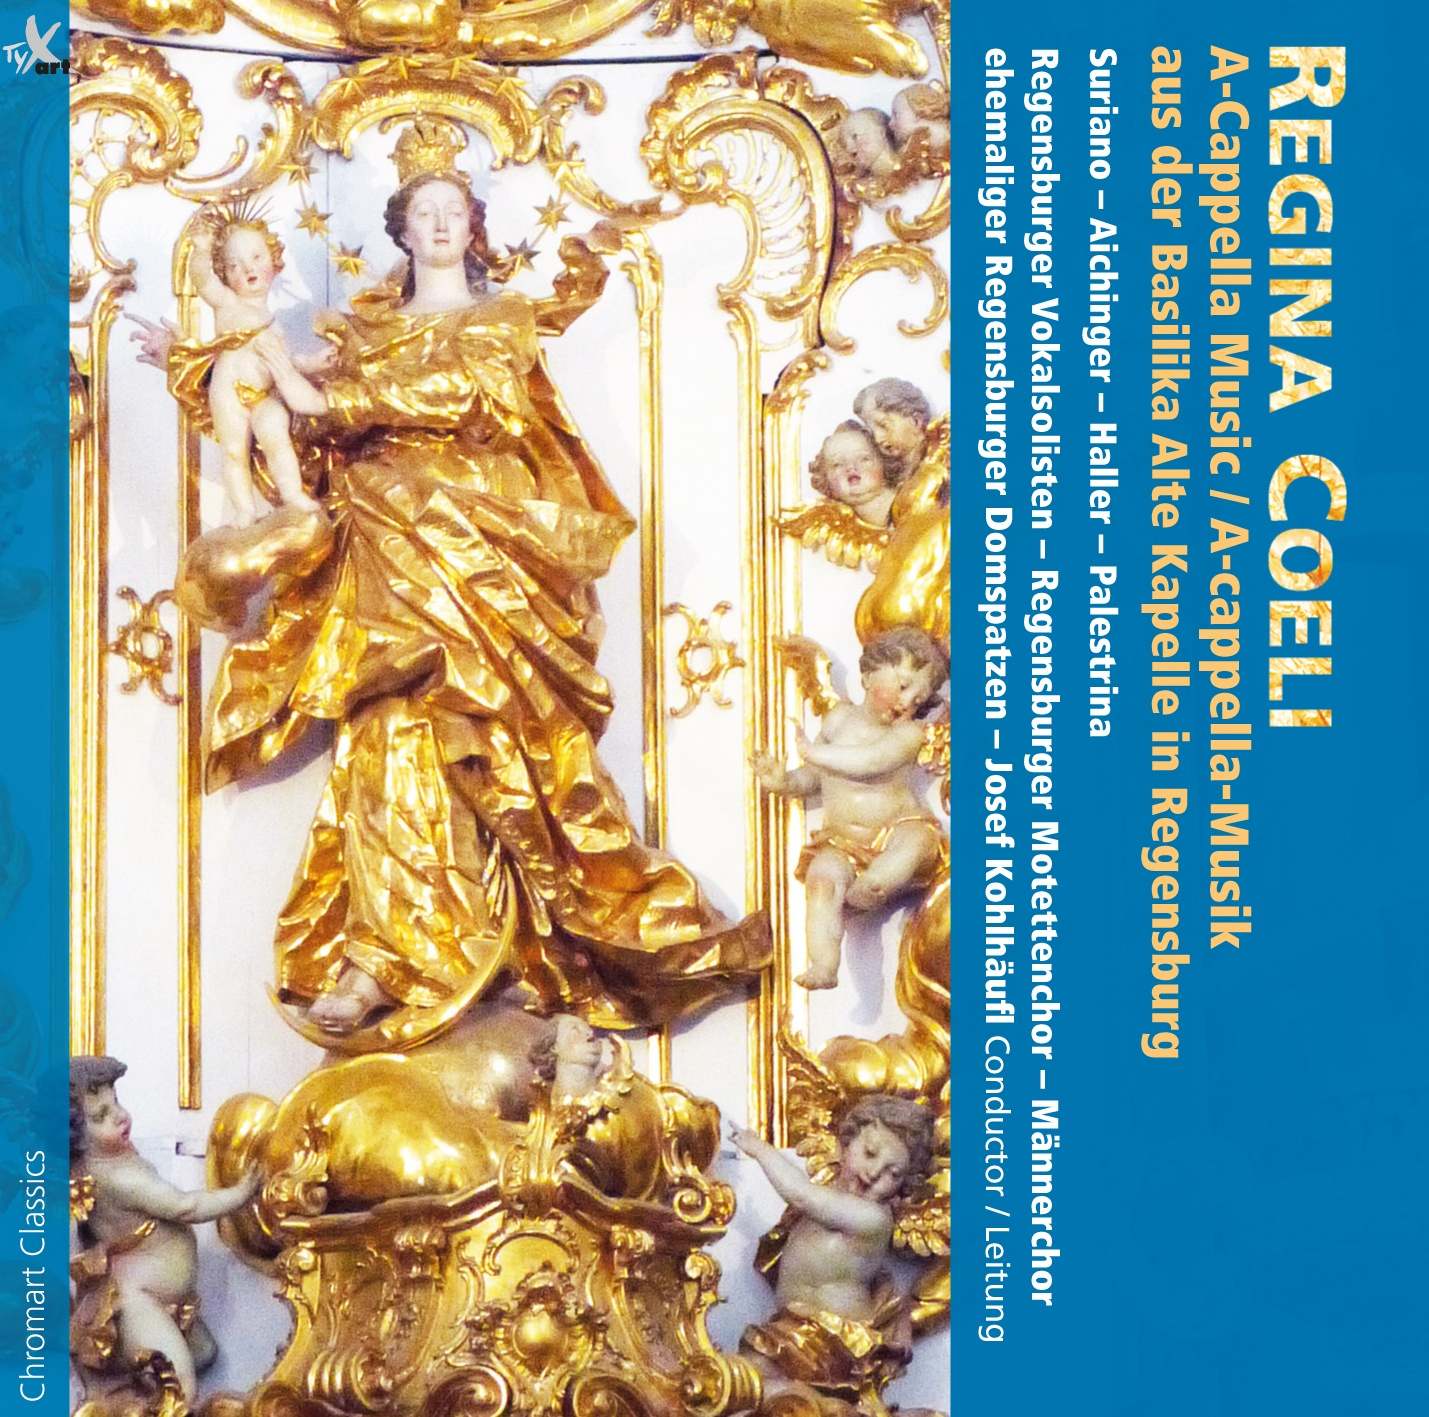 Regina Coeli - A-cappella-Music by Suriano, Aichinger, Haller and Palestrina